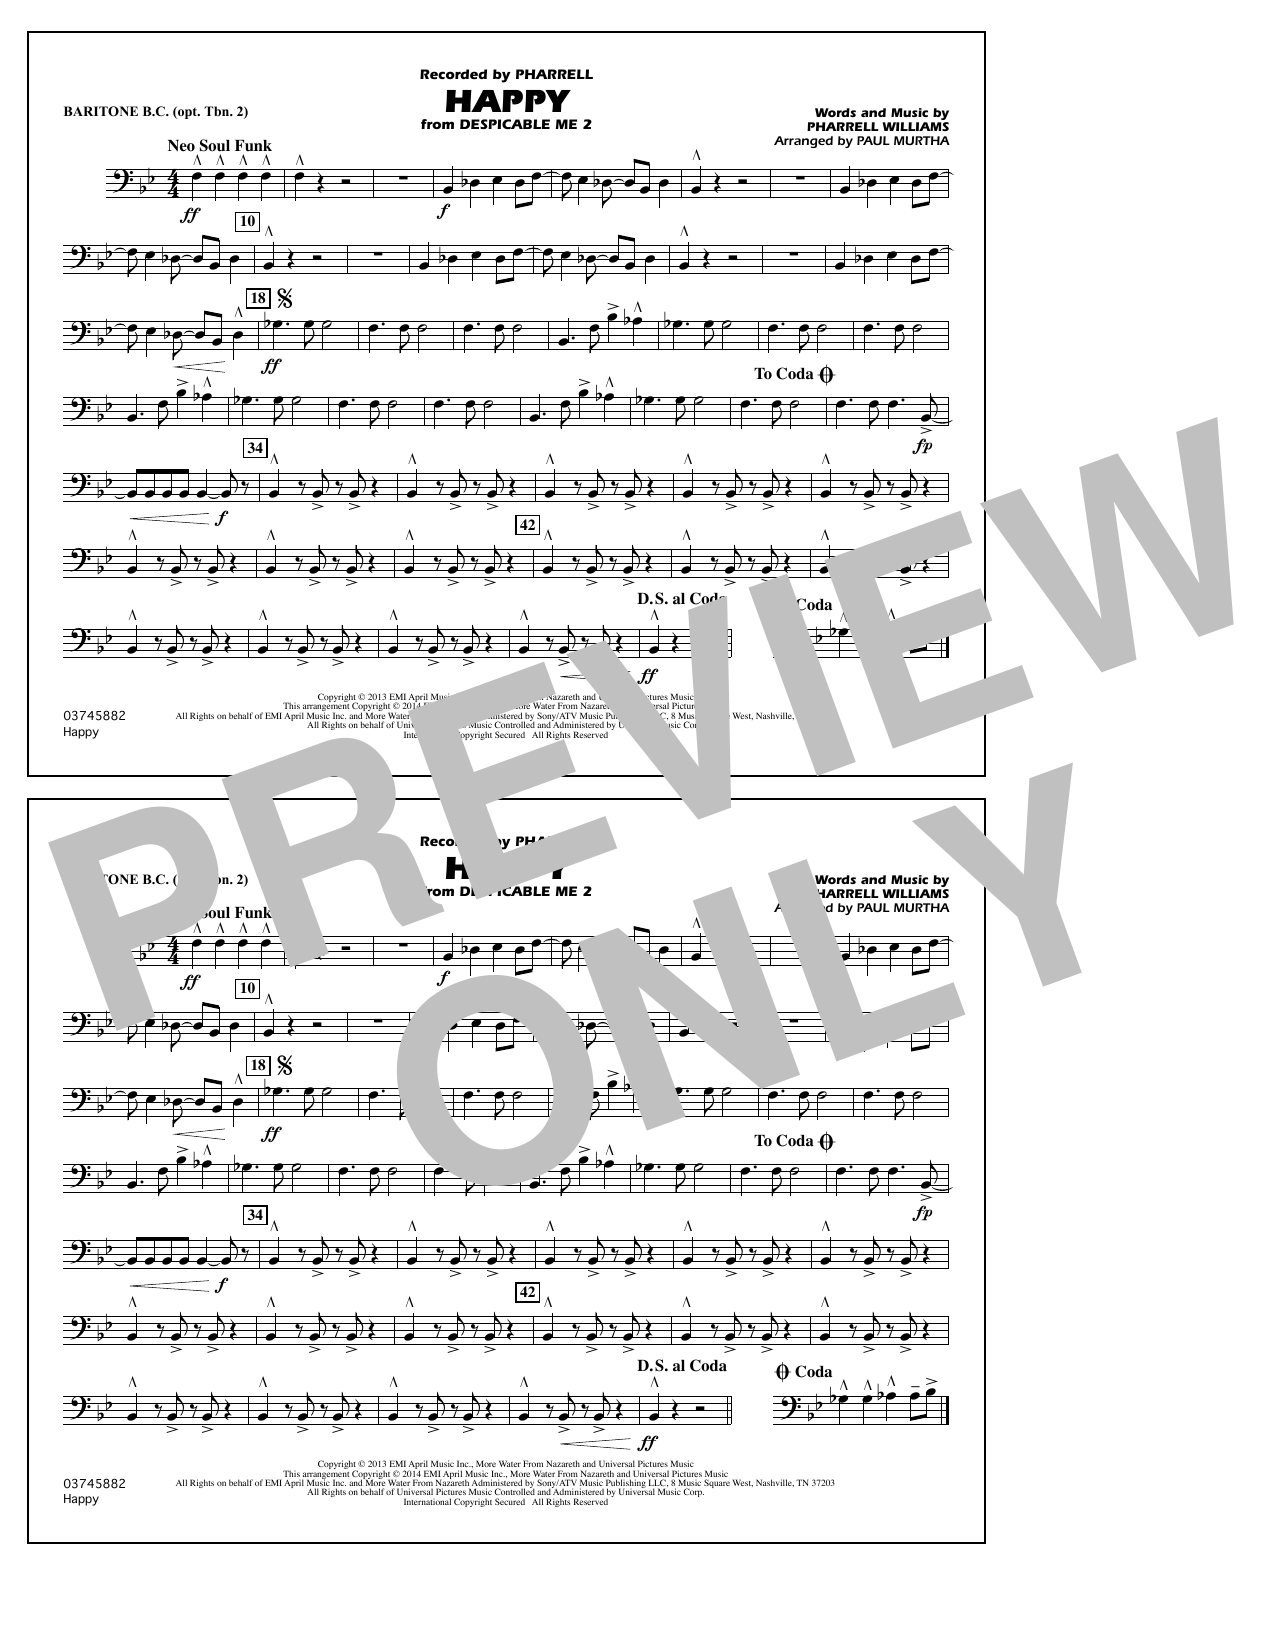 Happy (from Despicable Me 2) - Baritone B.C. (Opt. Tbn. 2) (Marching Band)